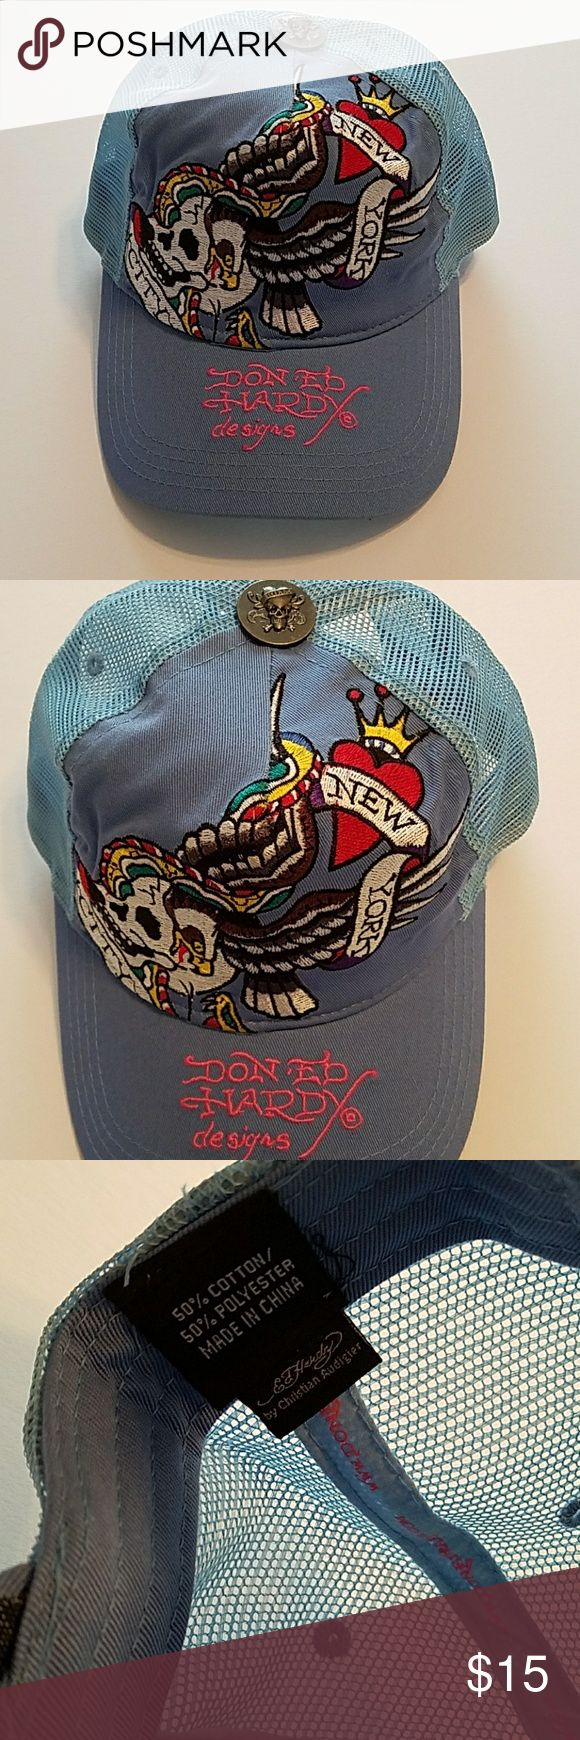 Ed Hardy Cap Authentic Don Ed Hardy designs 'New York City' snapback cap. Perfect condition, worn once.   Baby blue 50% Cotton 50% Polyester  Made in China Ed Hardy Accessories Hats